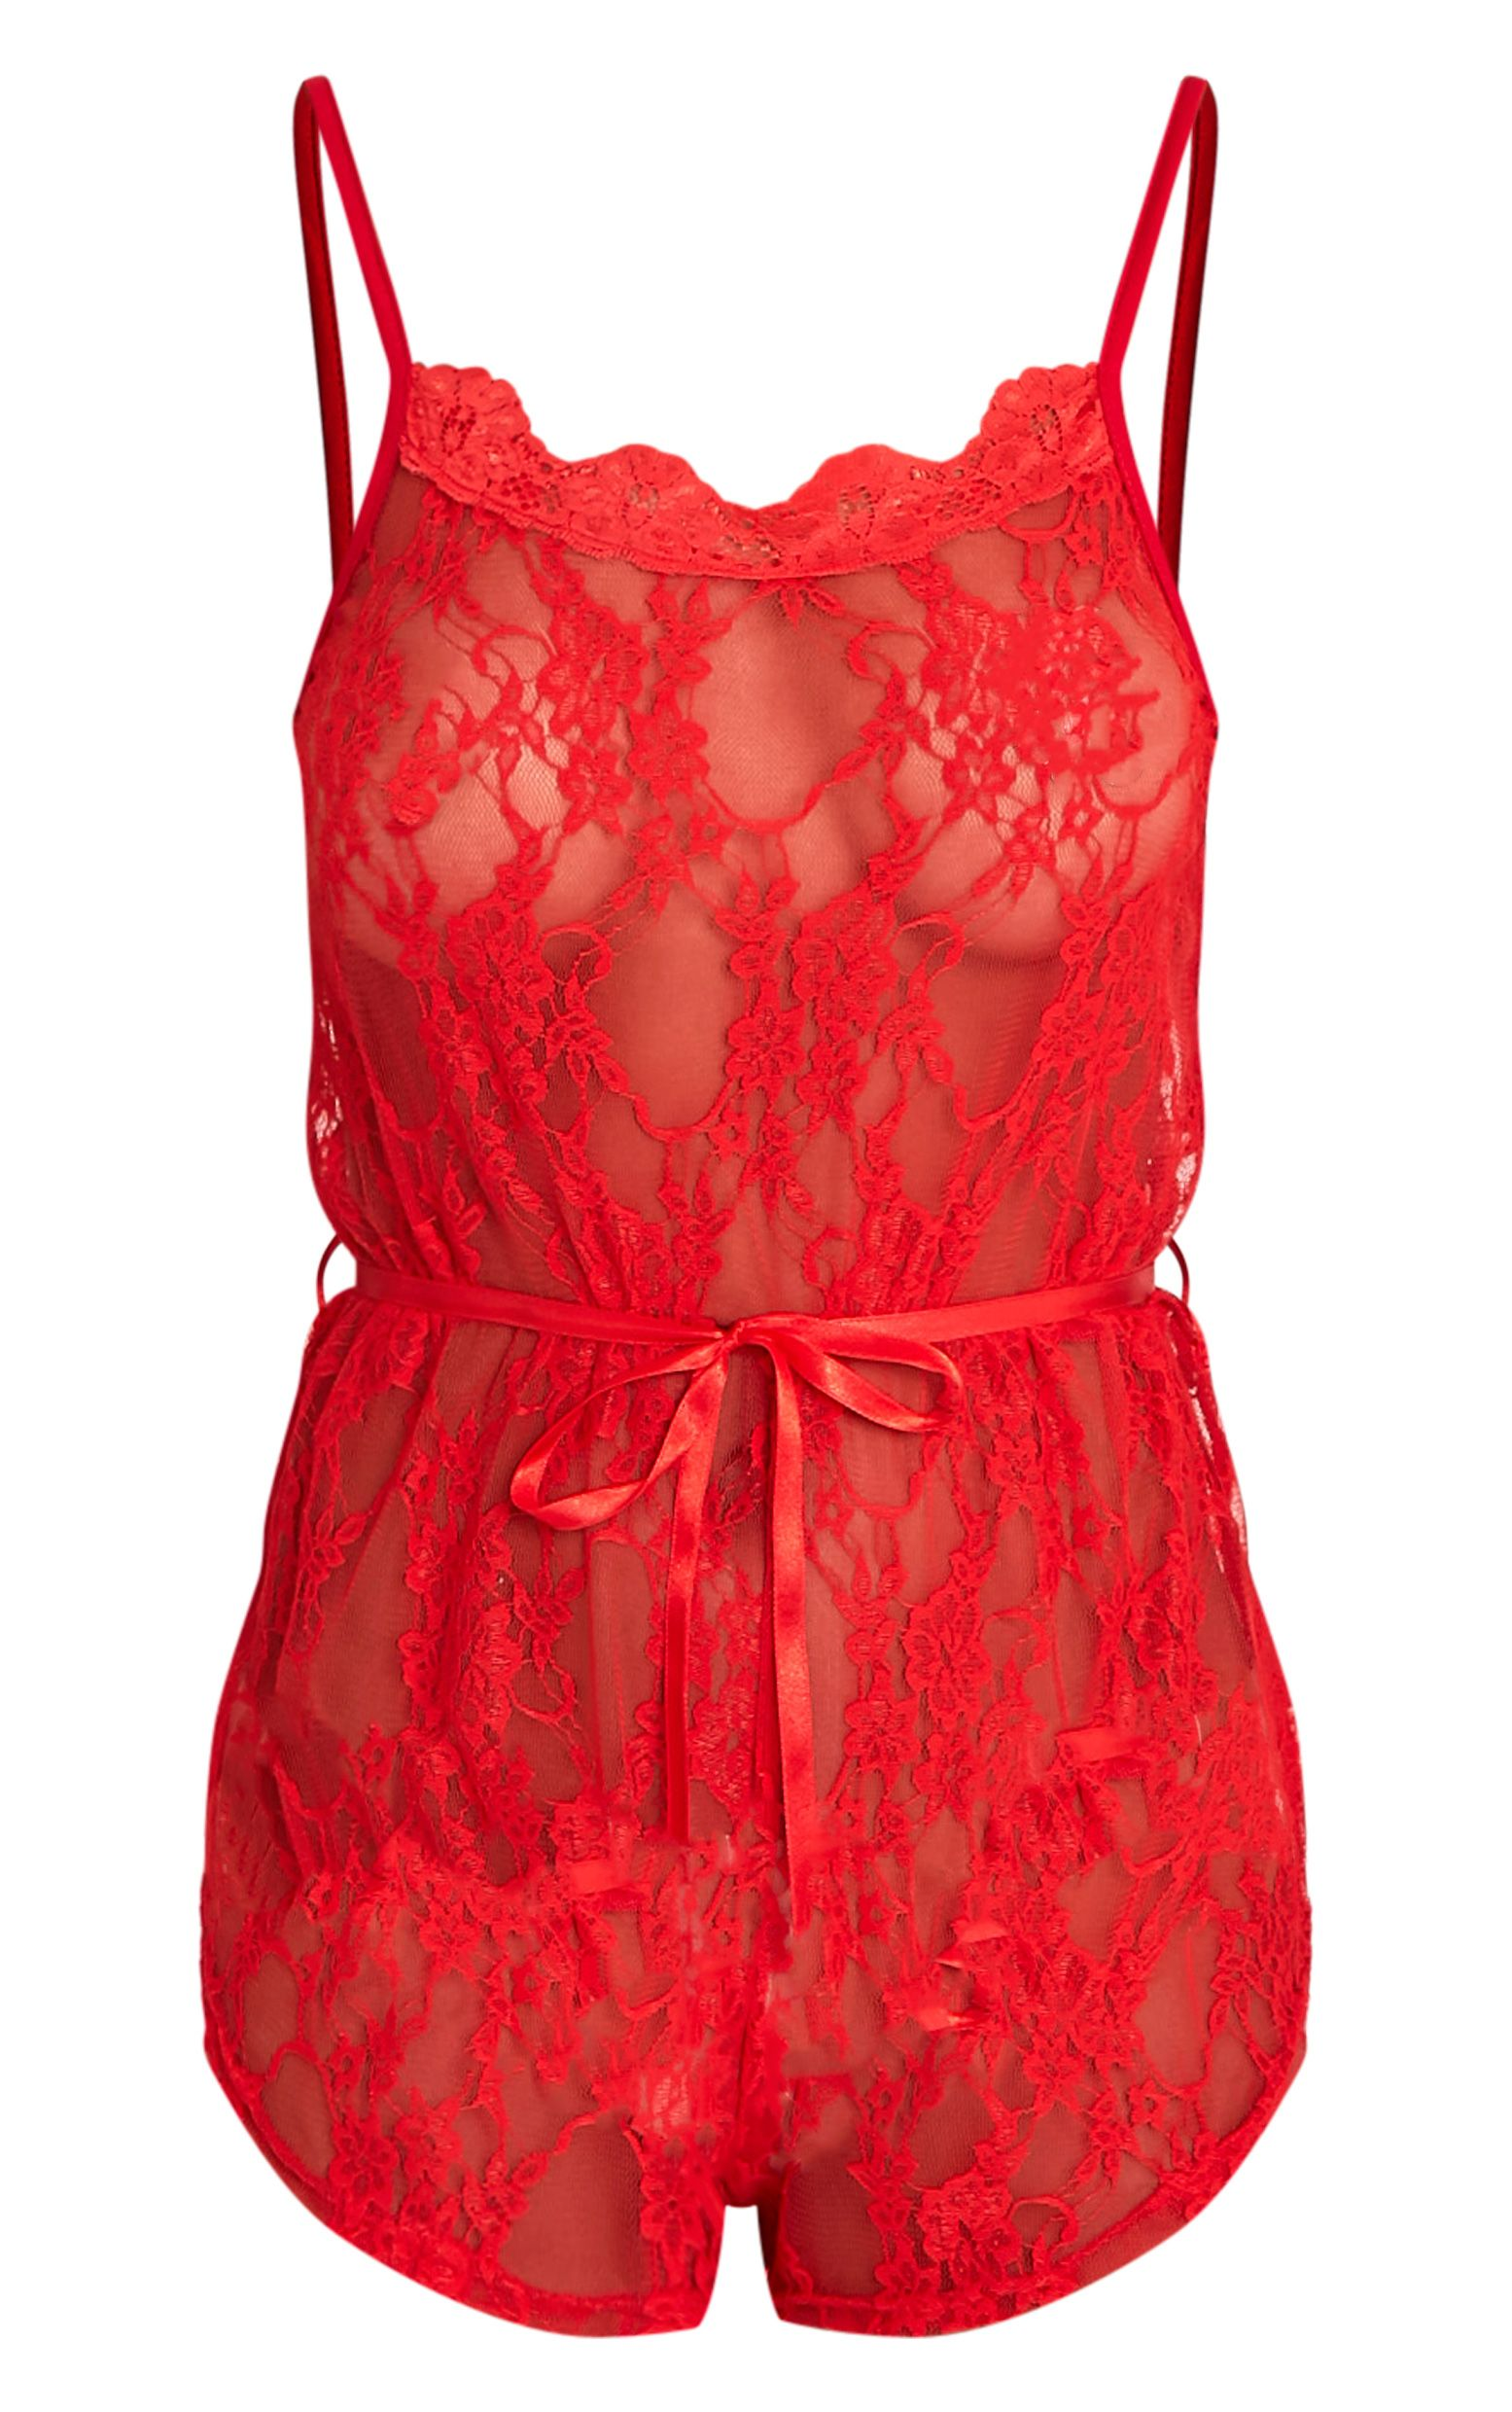 Sanny Red Lace Teddy Nightsuit  Lingerie  Nightwear   Prettylittlething-8055